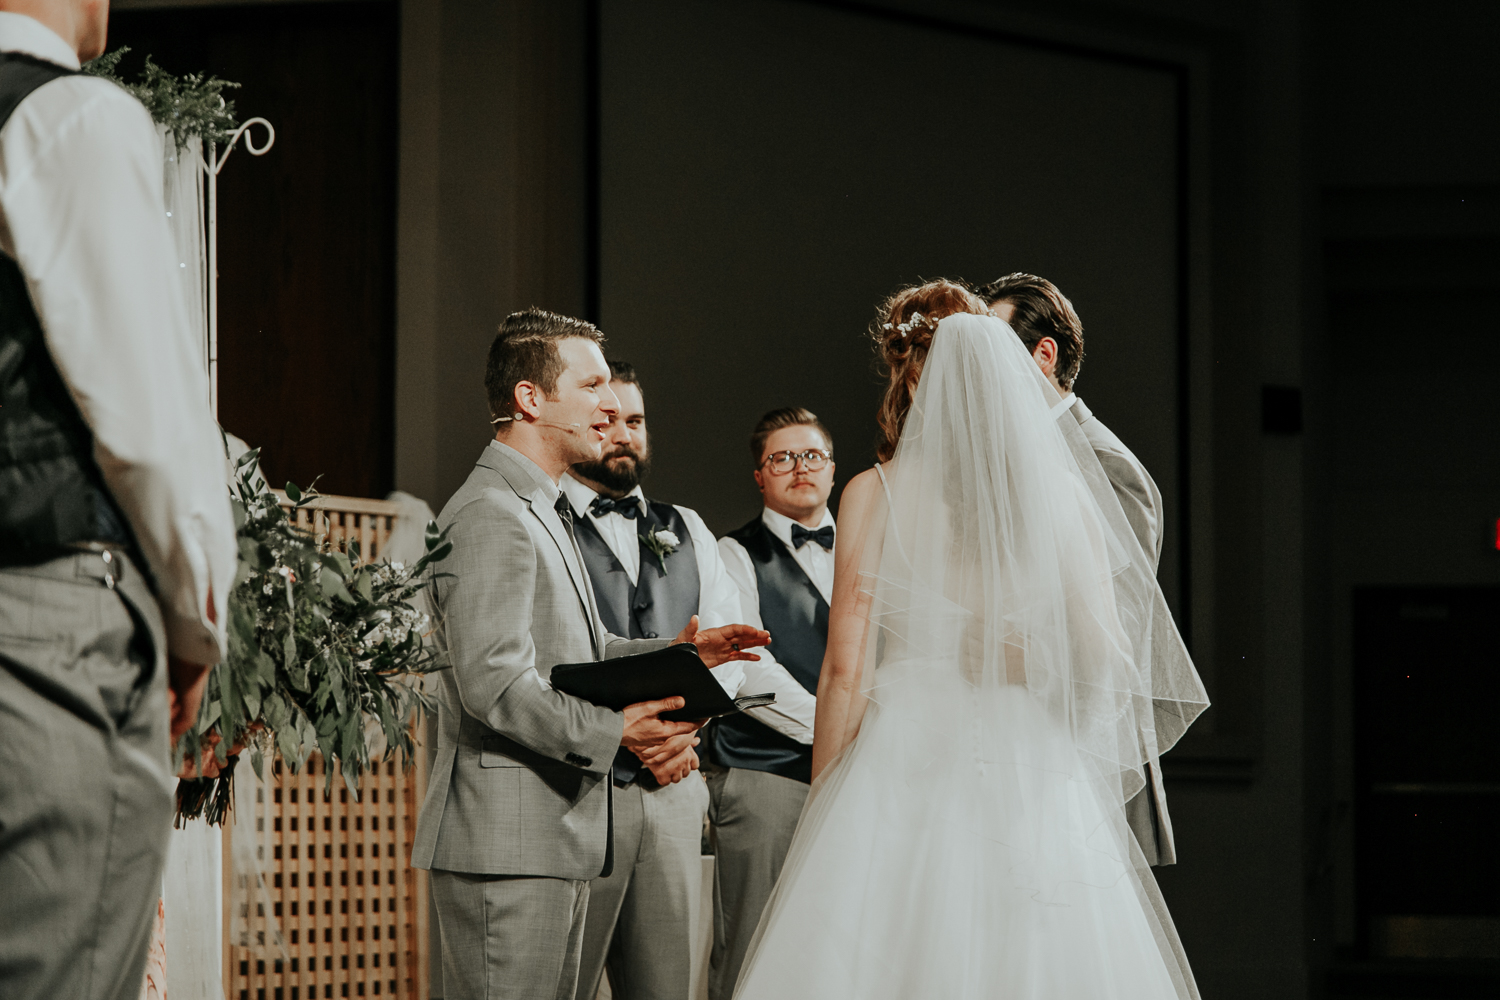 lethbridge-wedding-photographer-love-and-be-loved-photography-dan-tynnea-picture-image-photo-110.jpg